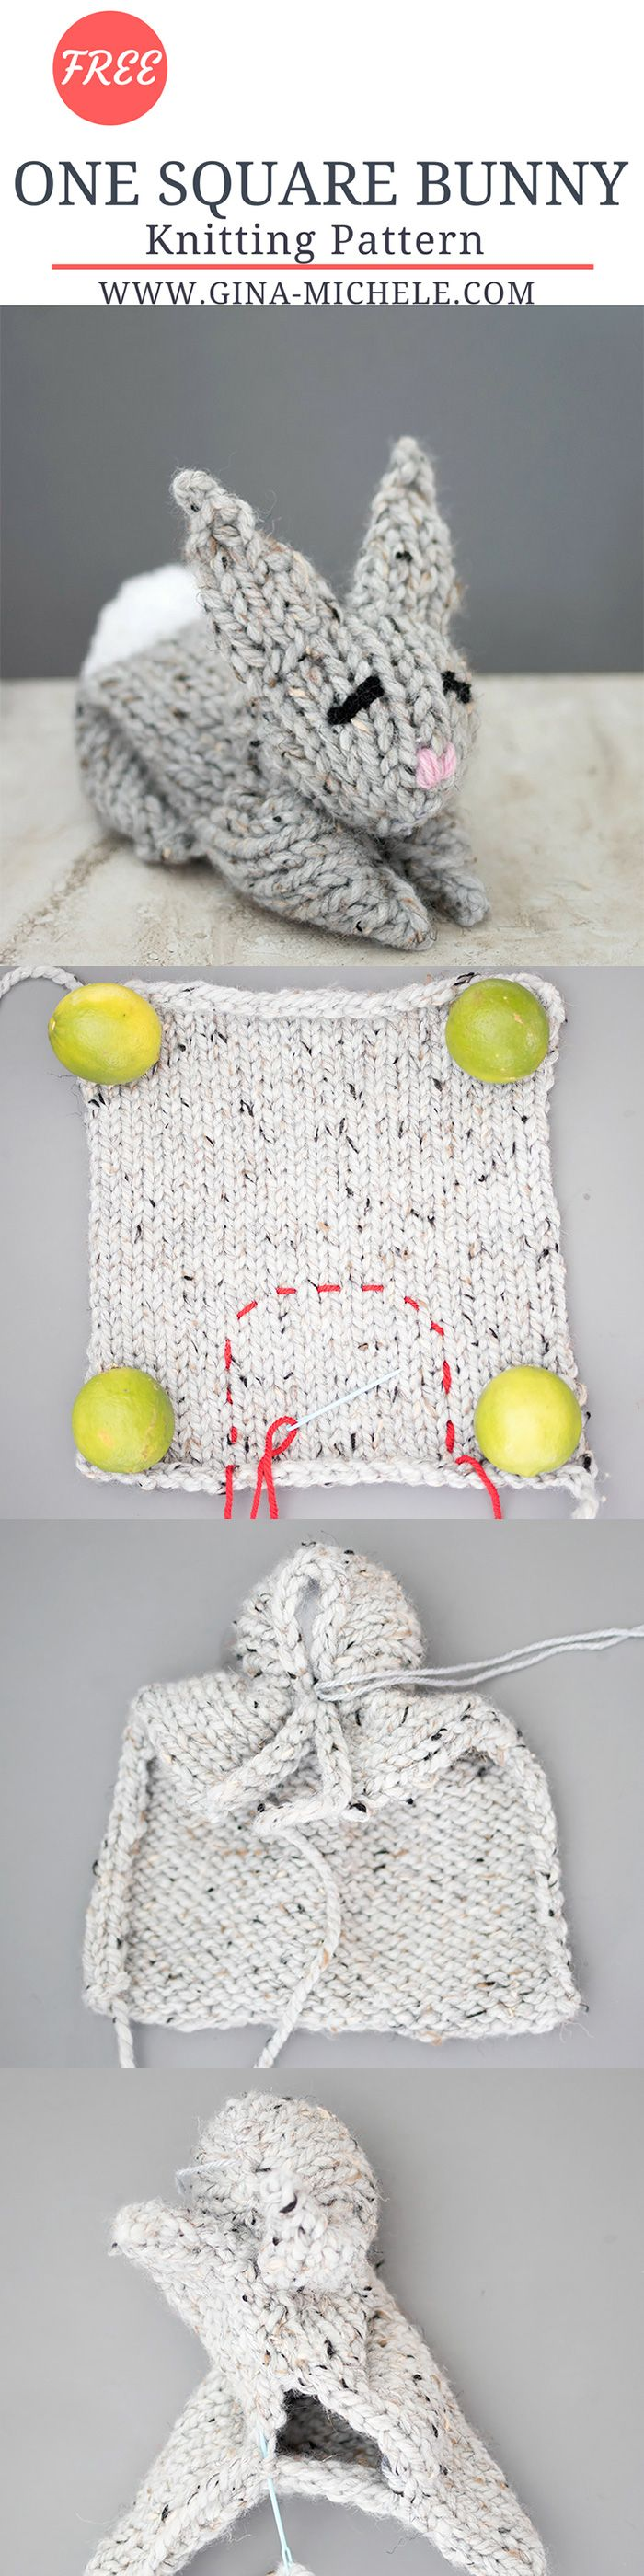 Free knitting pattern for this One Square Knit Bunny. If you can knit a square, you can make this bunny!